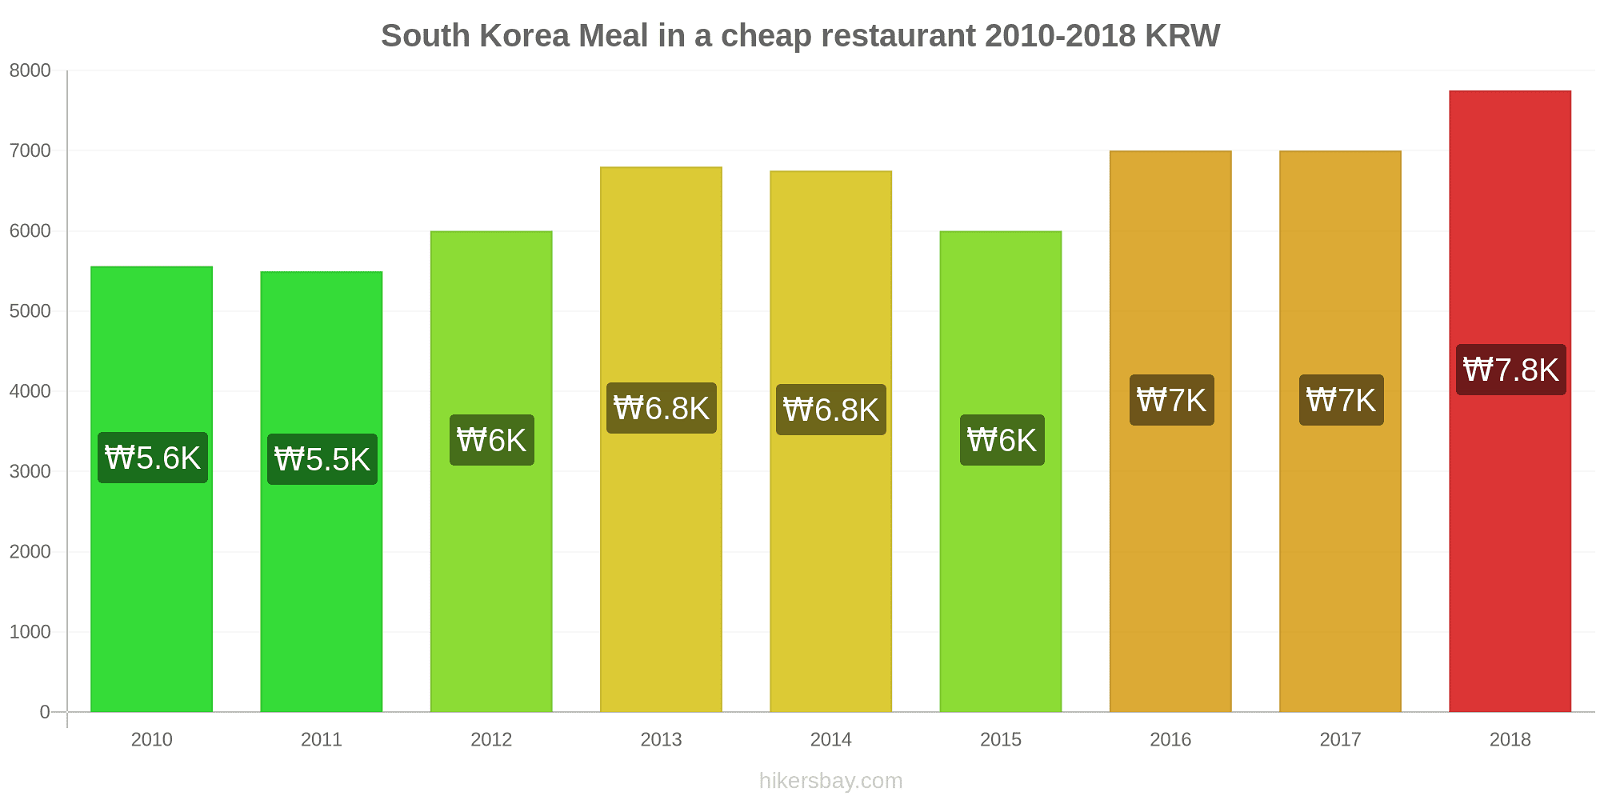 South Korea price changes Meal in a cheap restaurant hikersbay.com